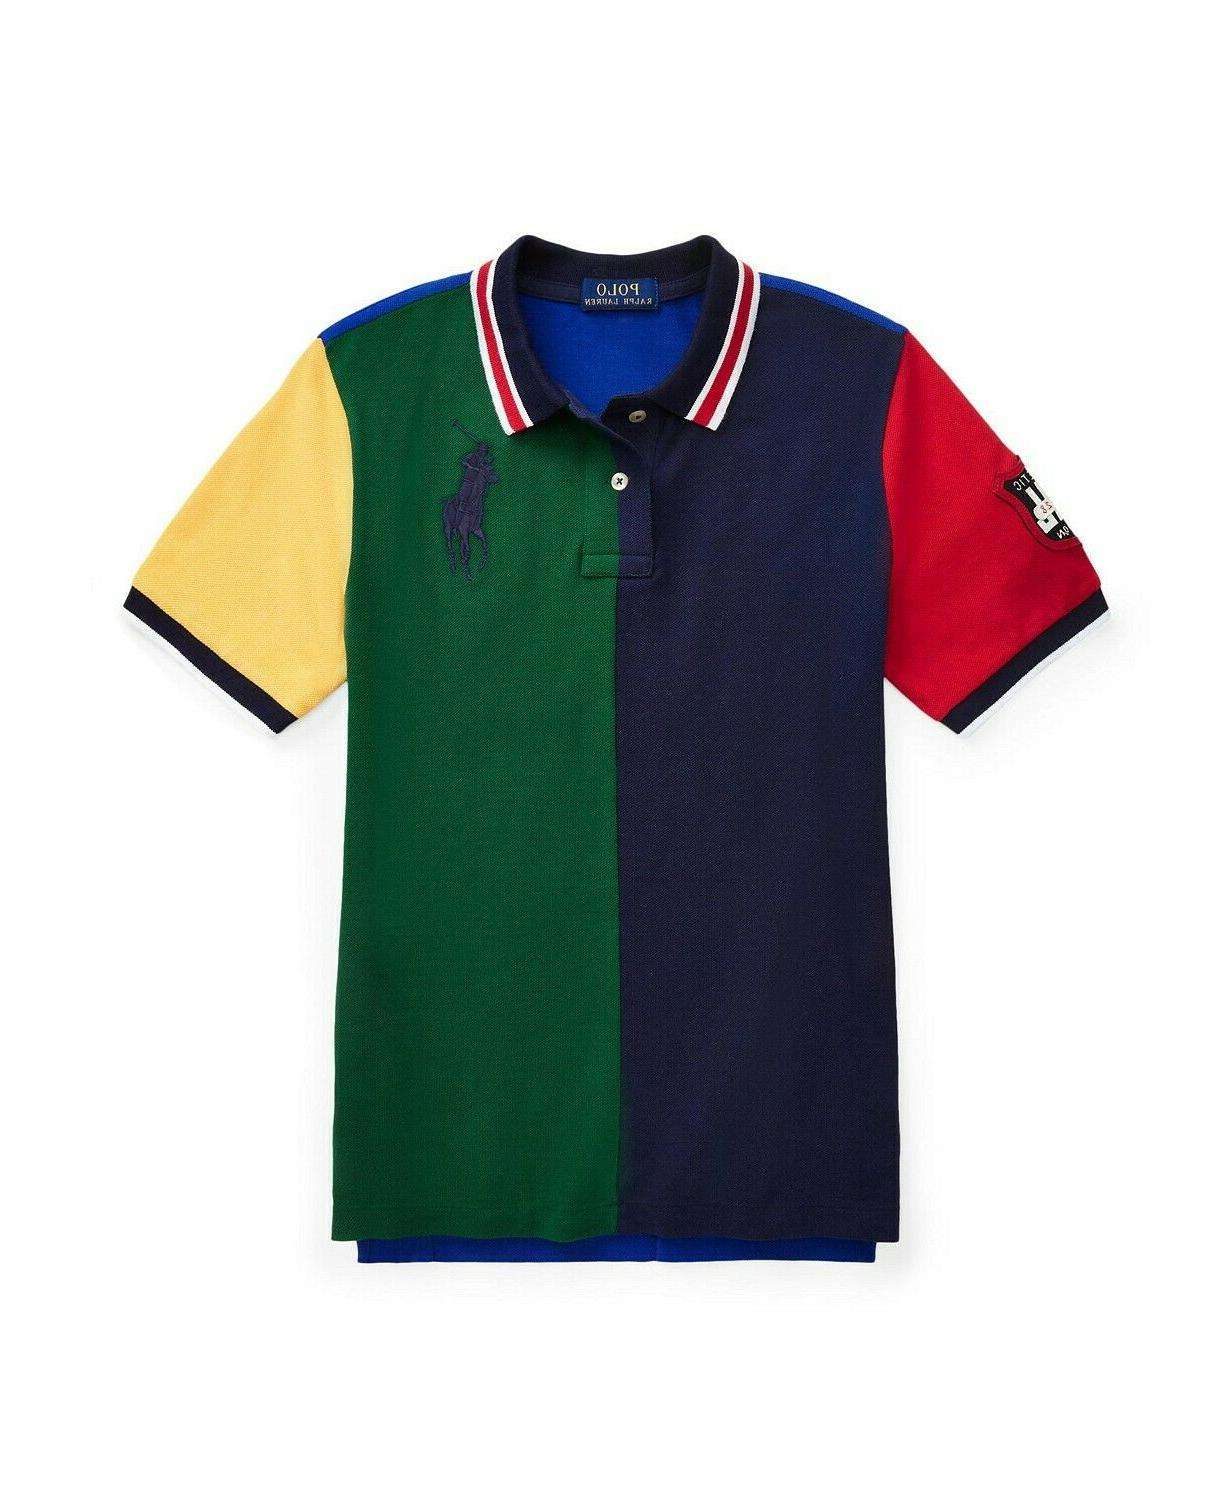 nwt 49 color blocked big pony polo